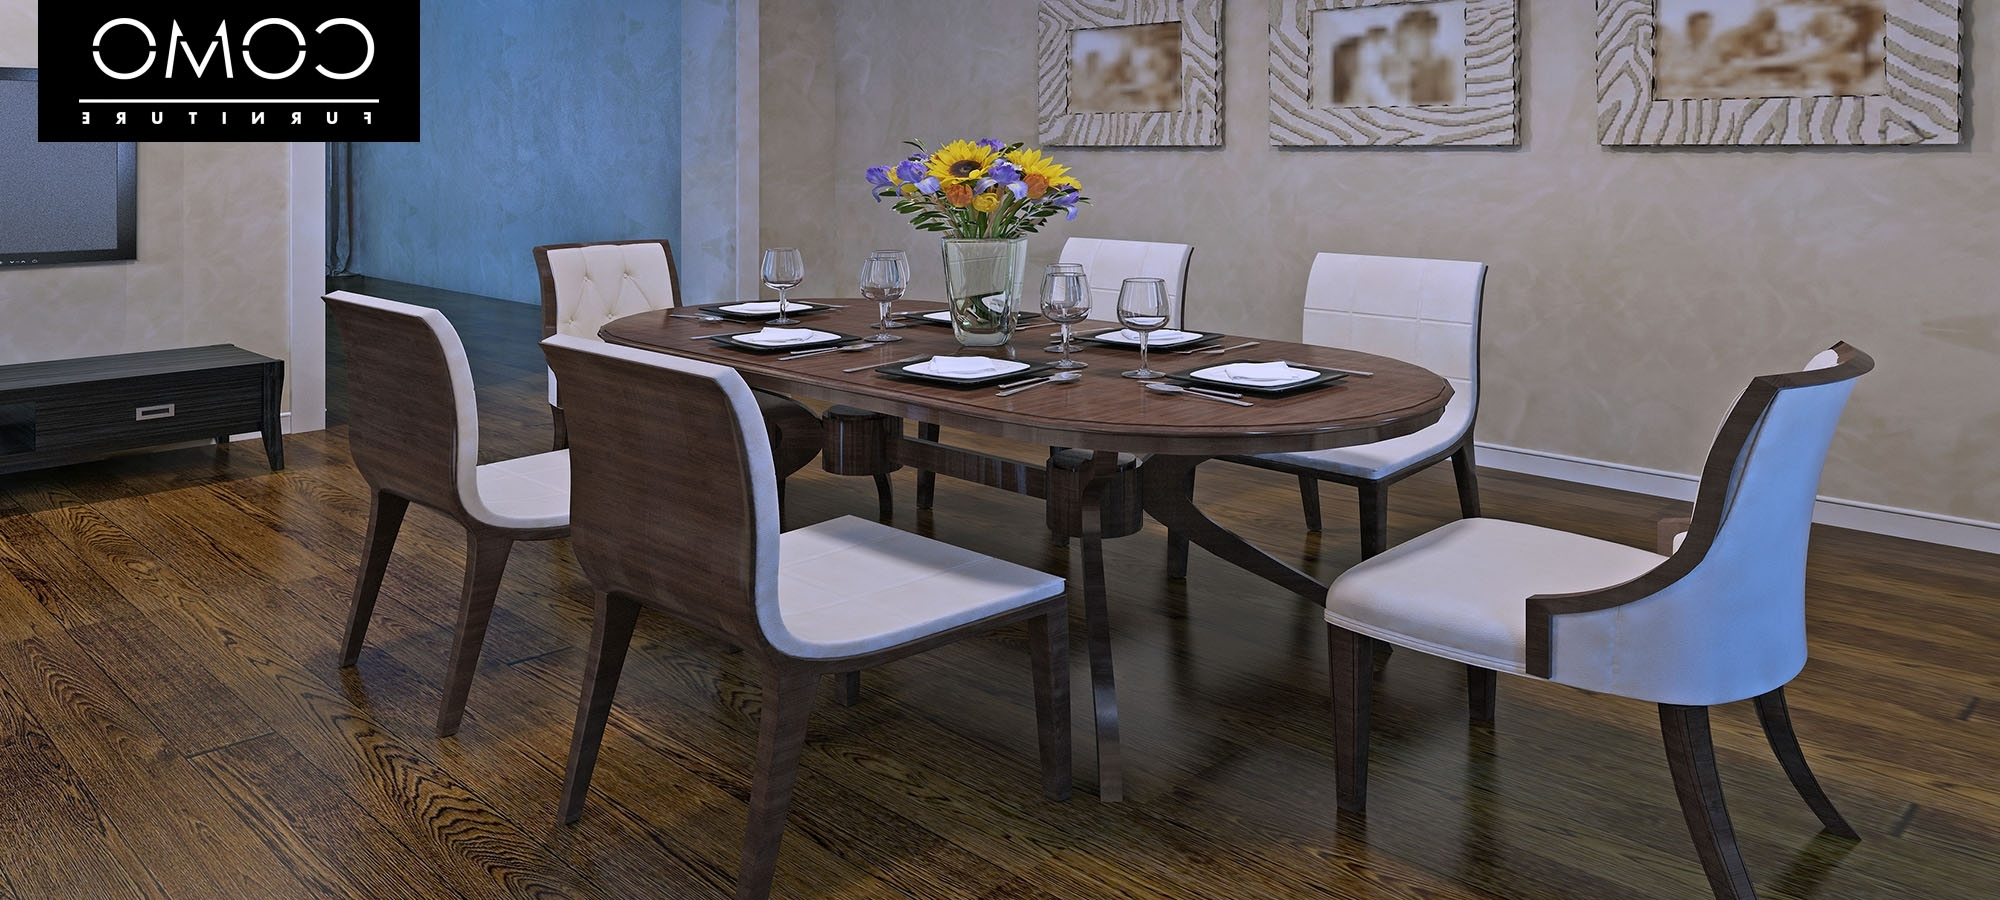 Como Intended For Most Recently Released Como Dining Tables (Gallery 18 of 25)